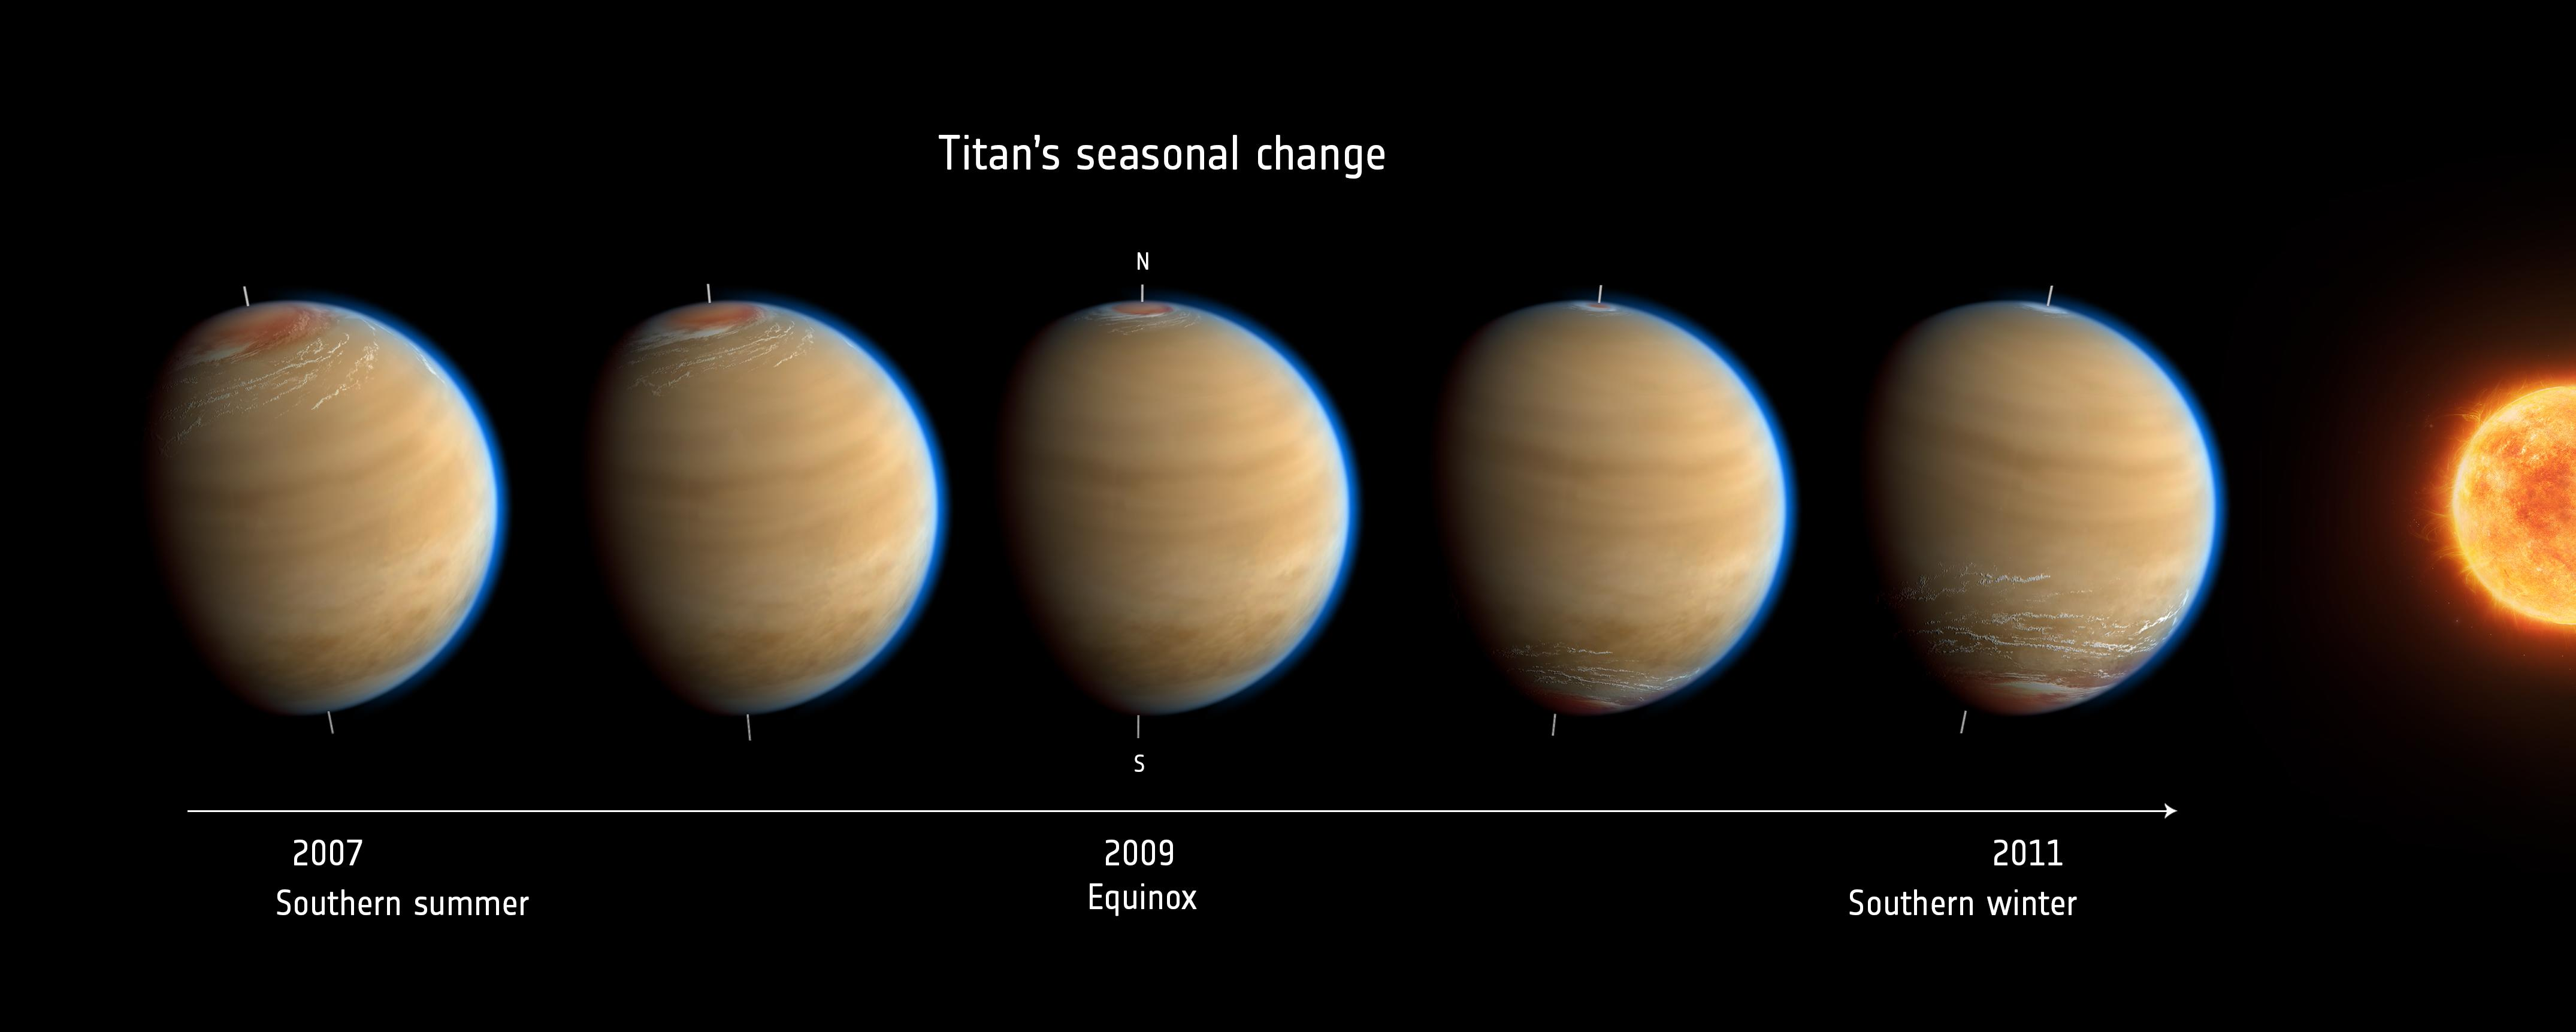 Artist's impression of Titan showing changes during and after equinox in 2009